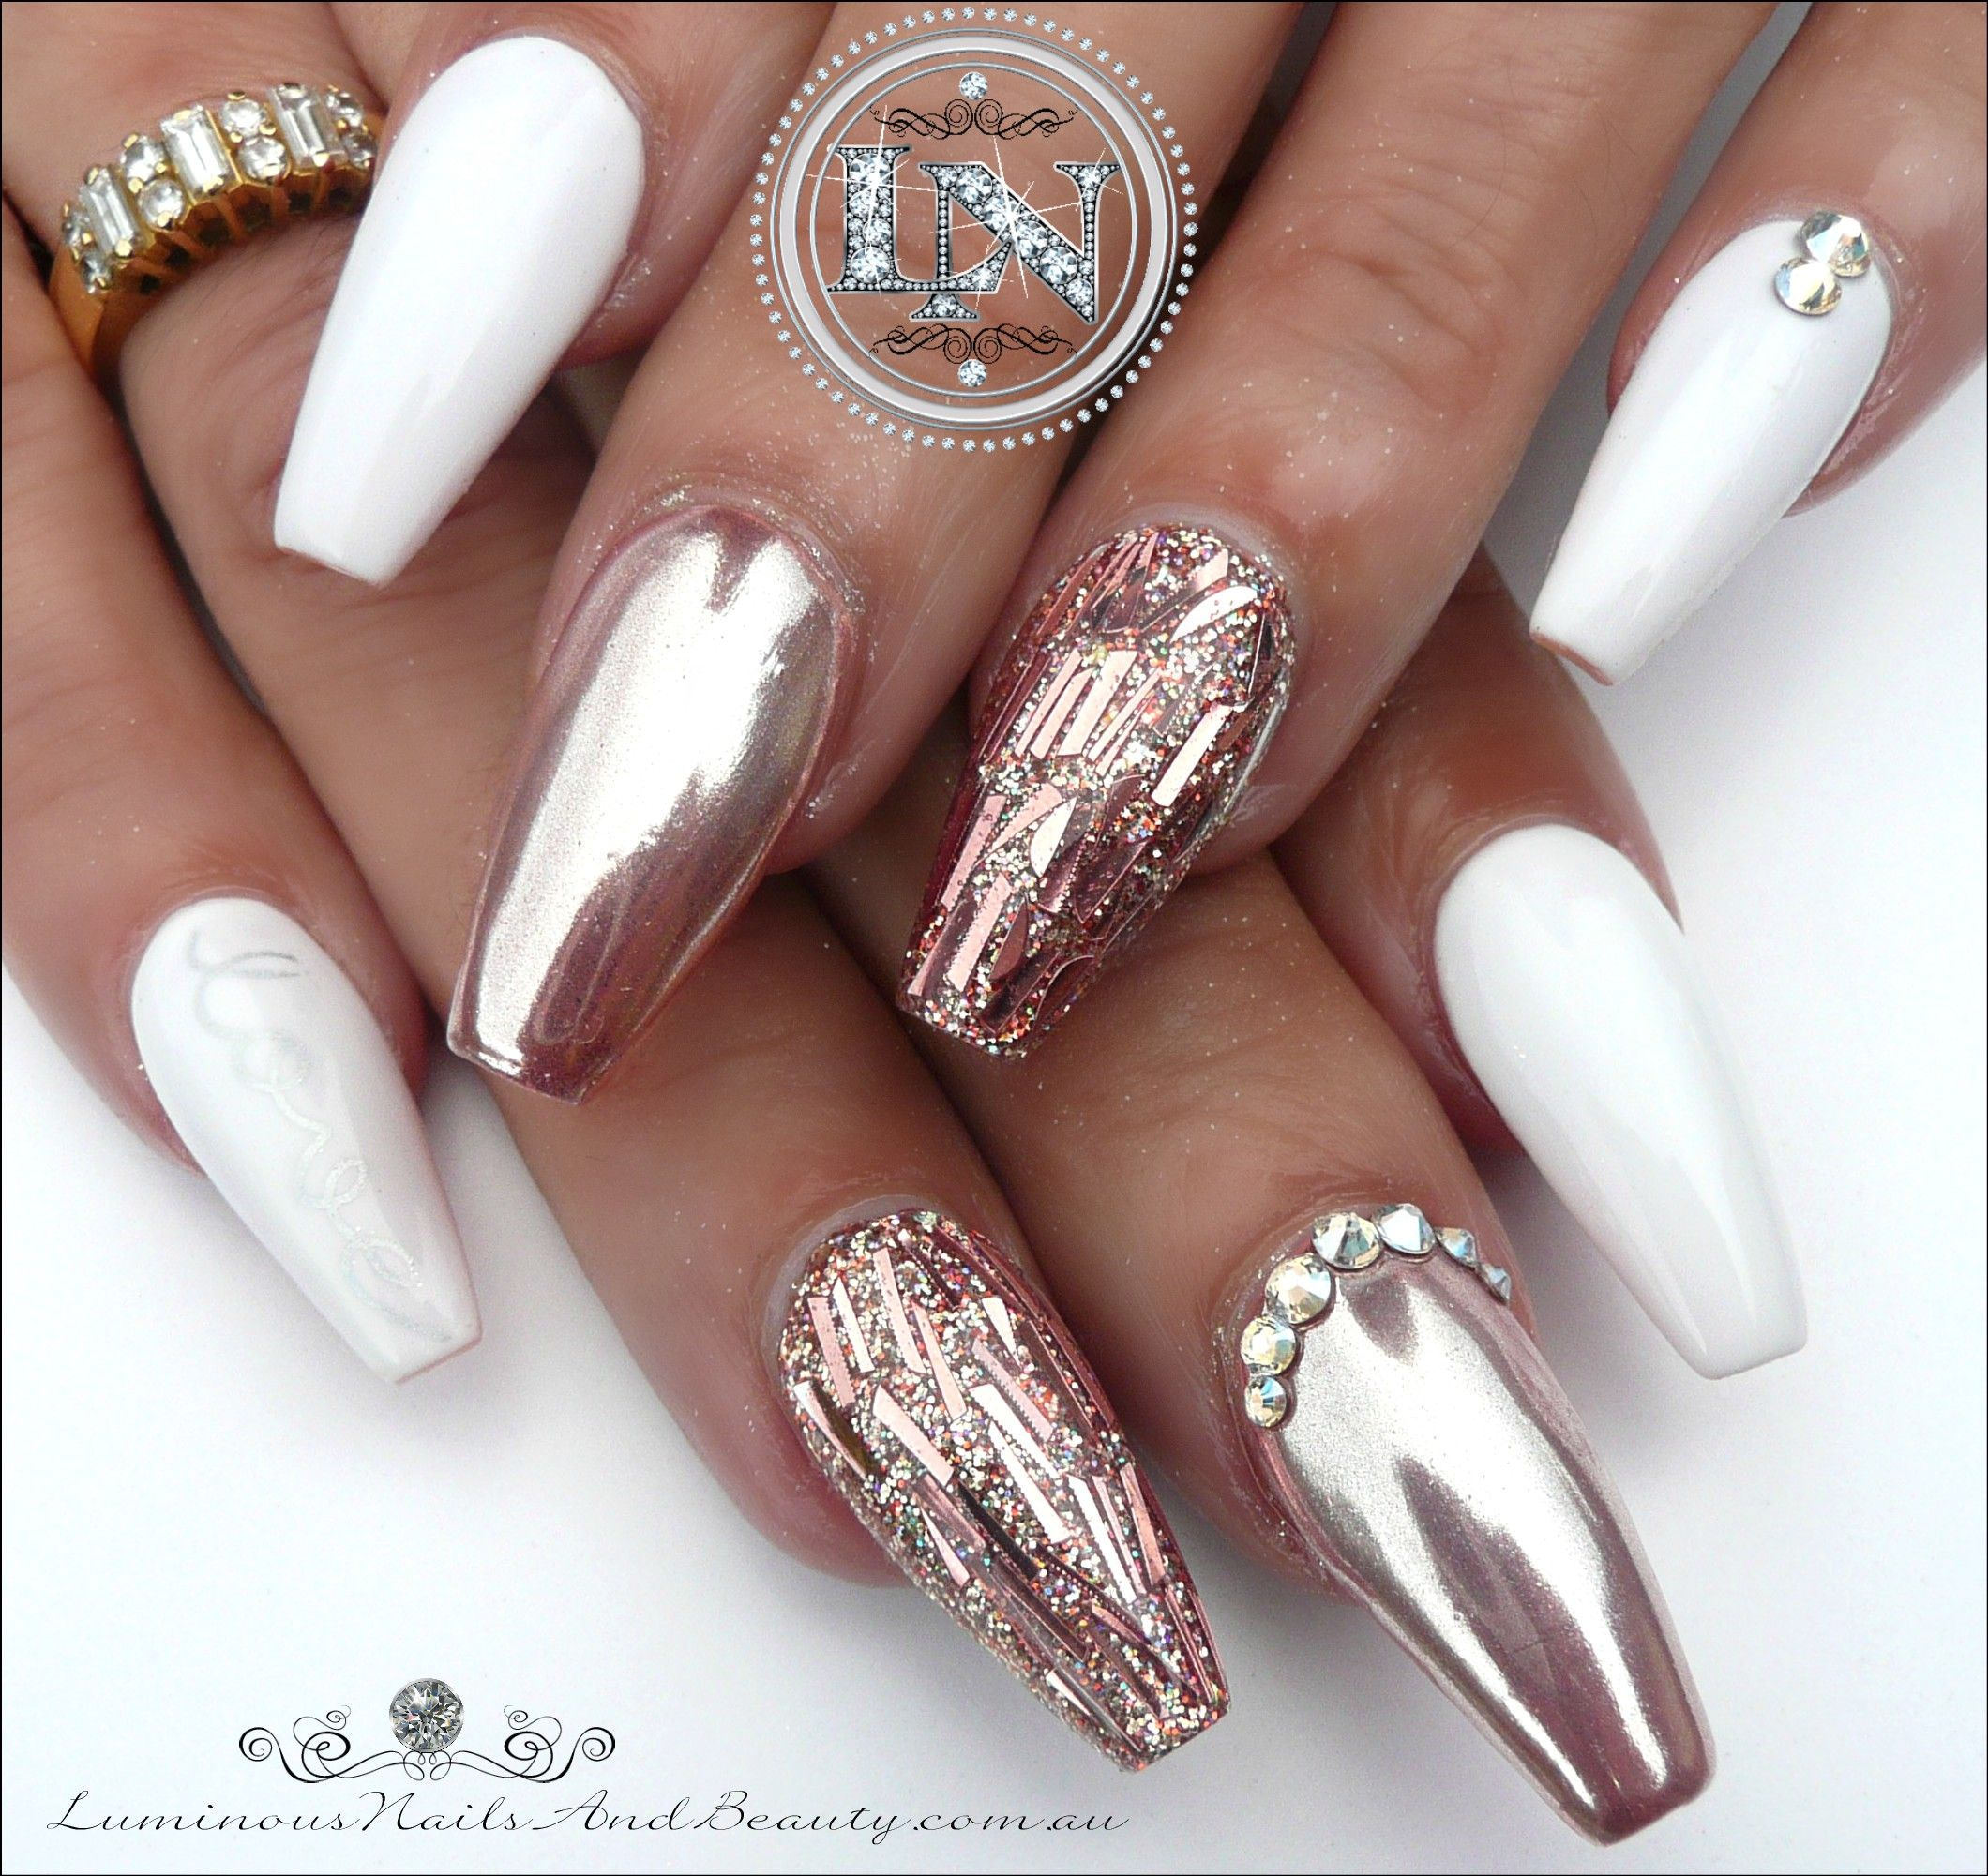 21 Chic White Acrylic Nails to Copy 21 Chic White Acrylic Nails to Copy new picture